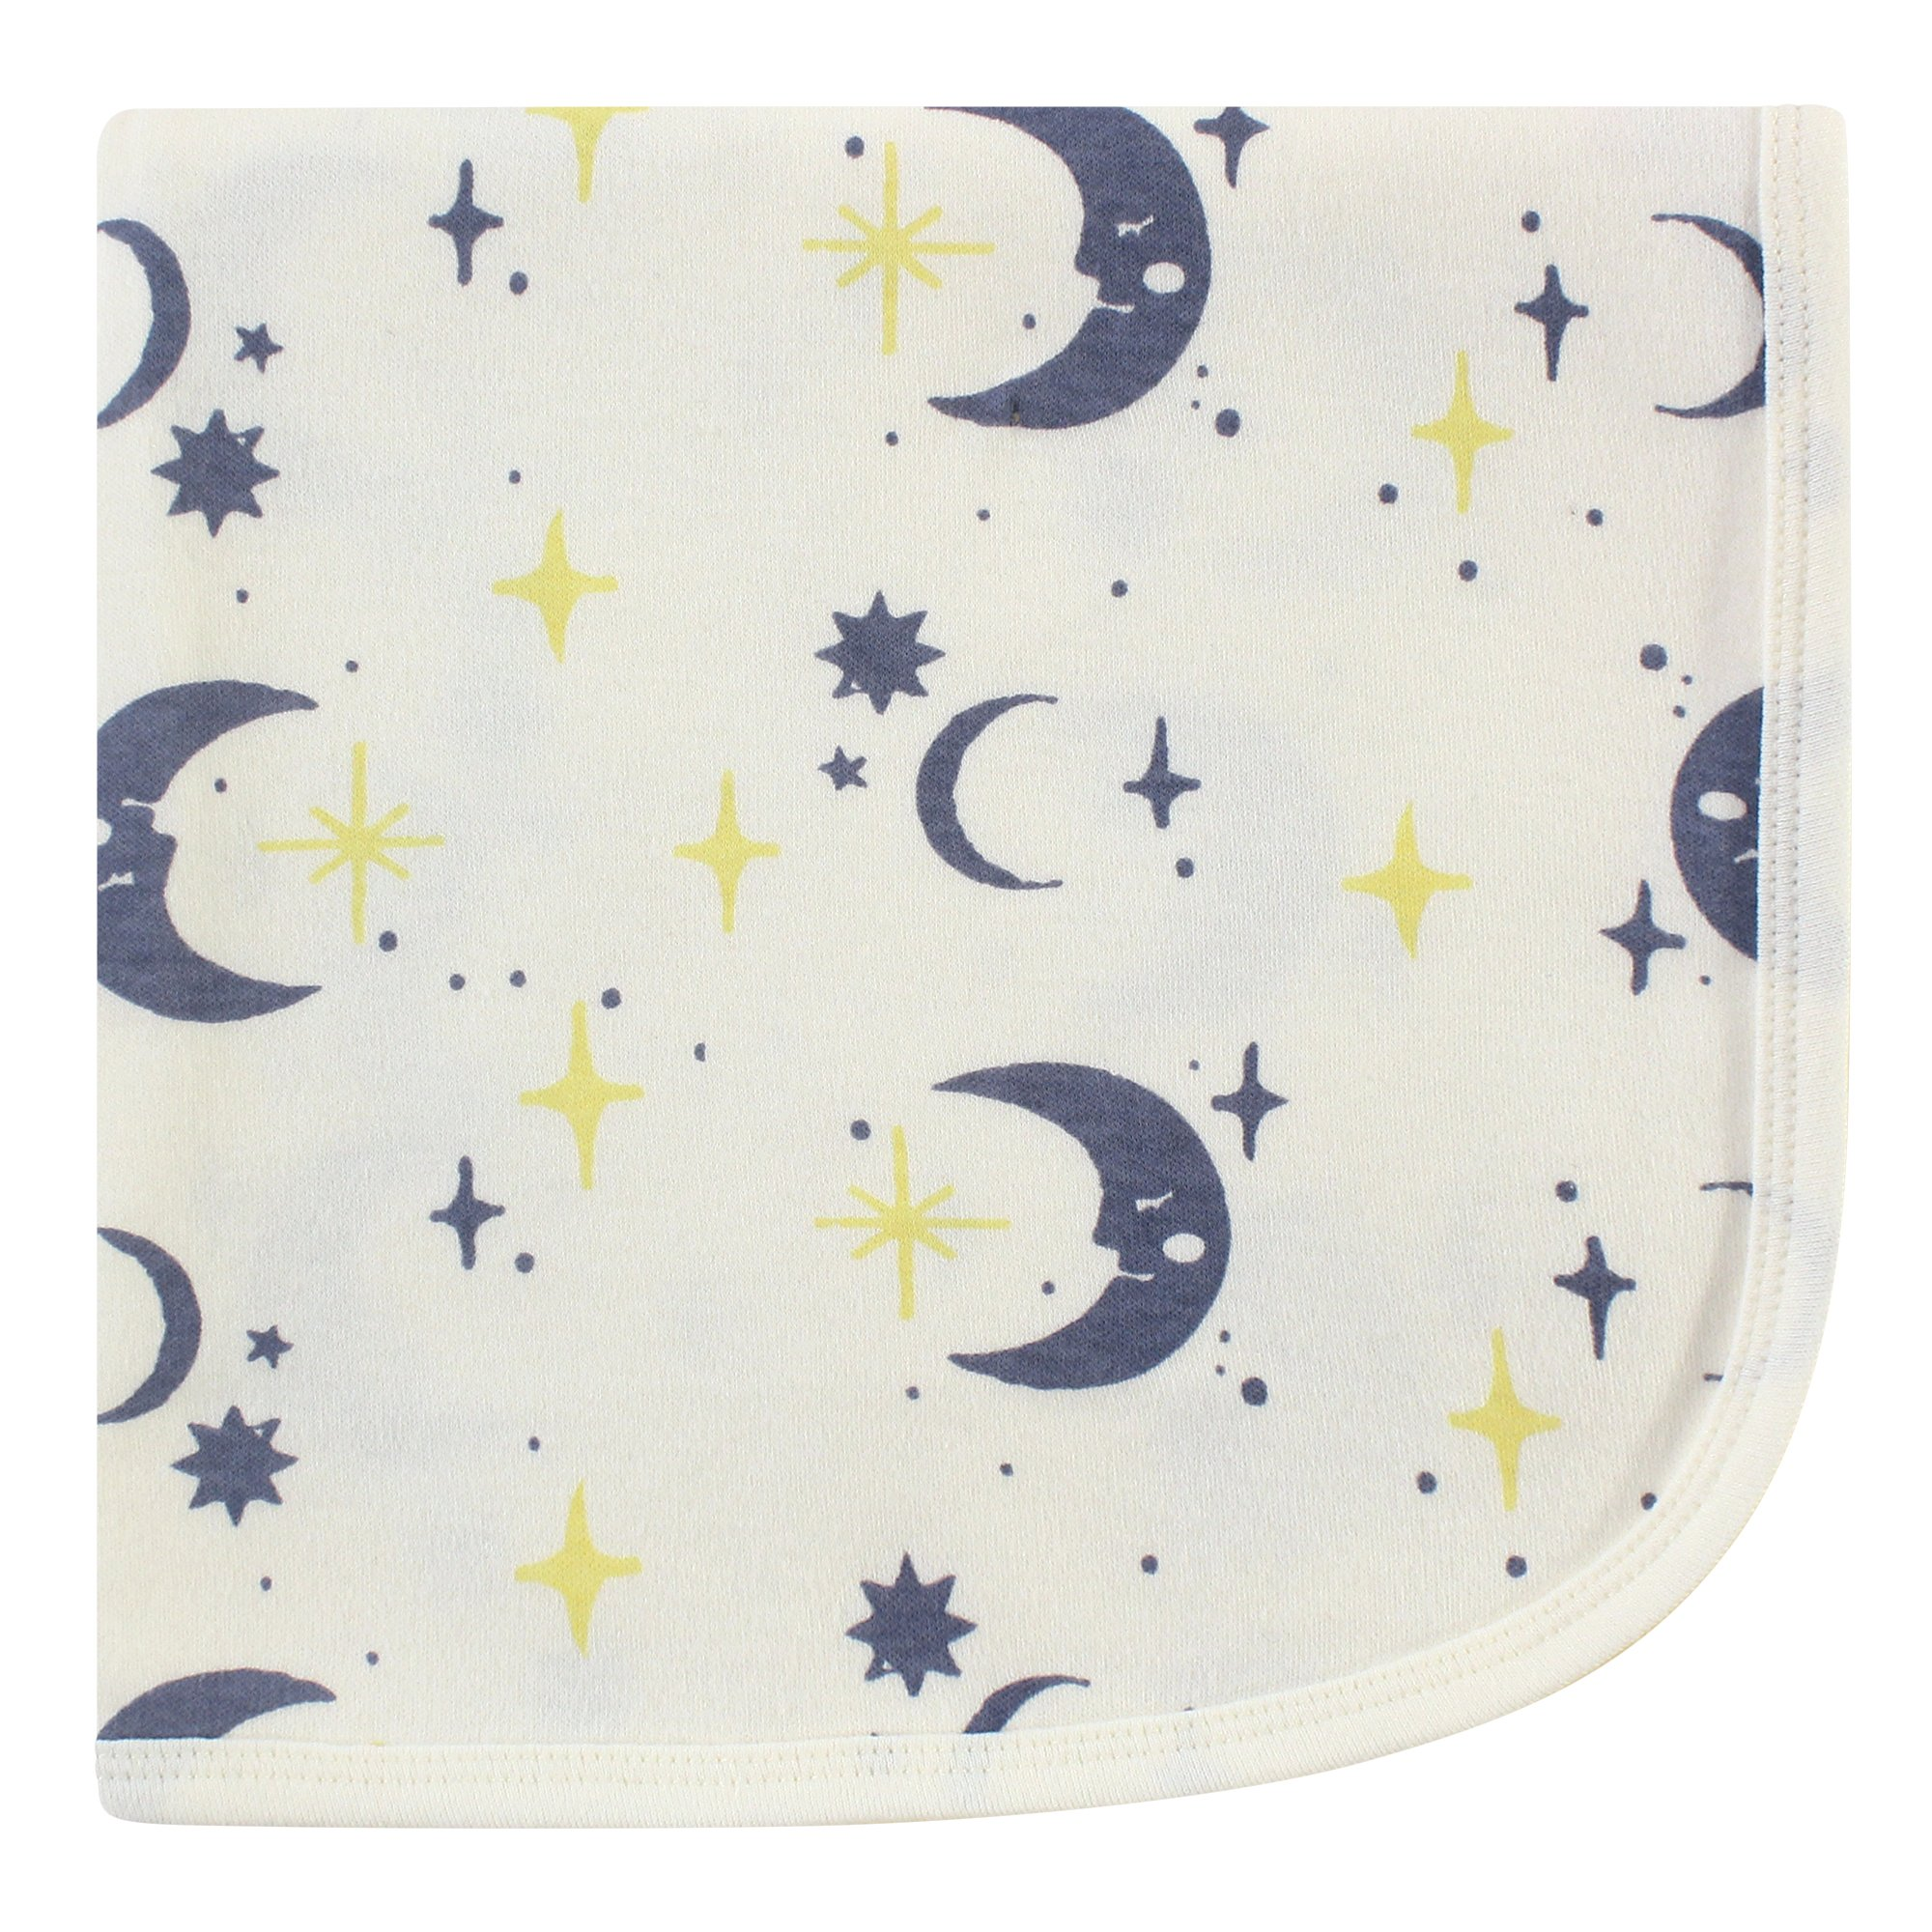 Touched by Nature Unisex Baby Organic Cotton Swaddle, Receiving and Multi-purpose Blanket, Moon, One Size